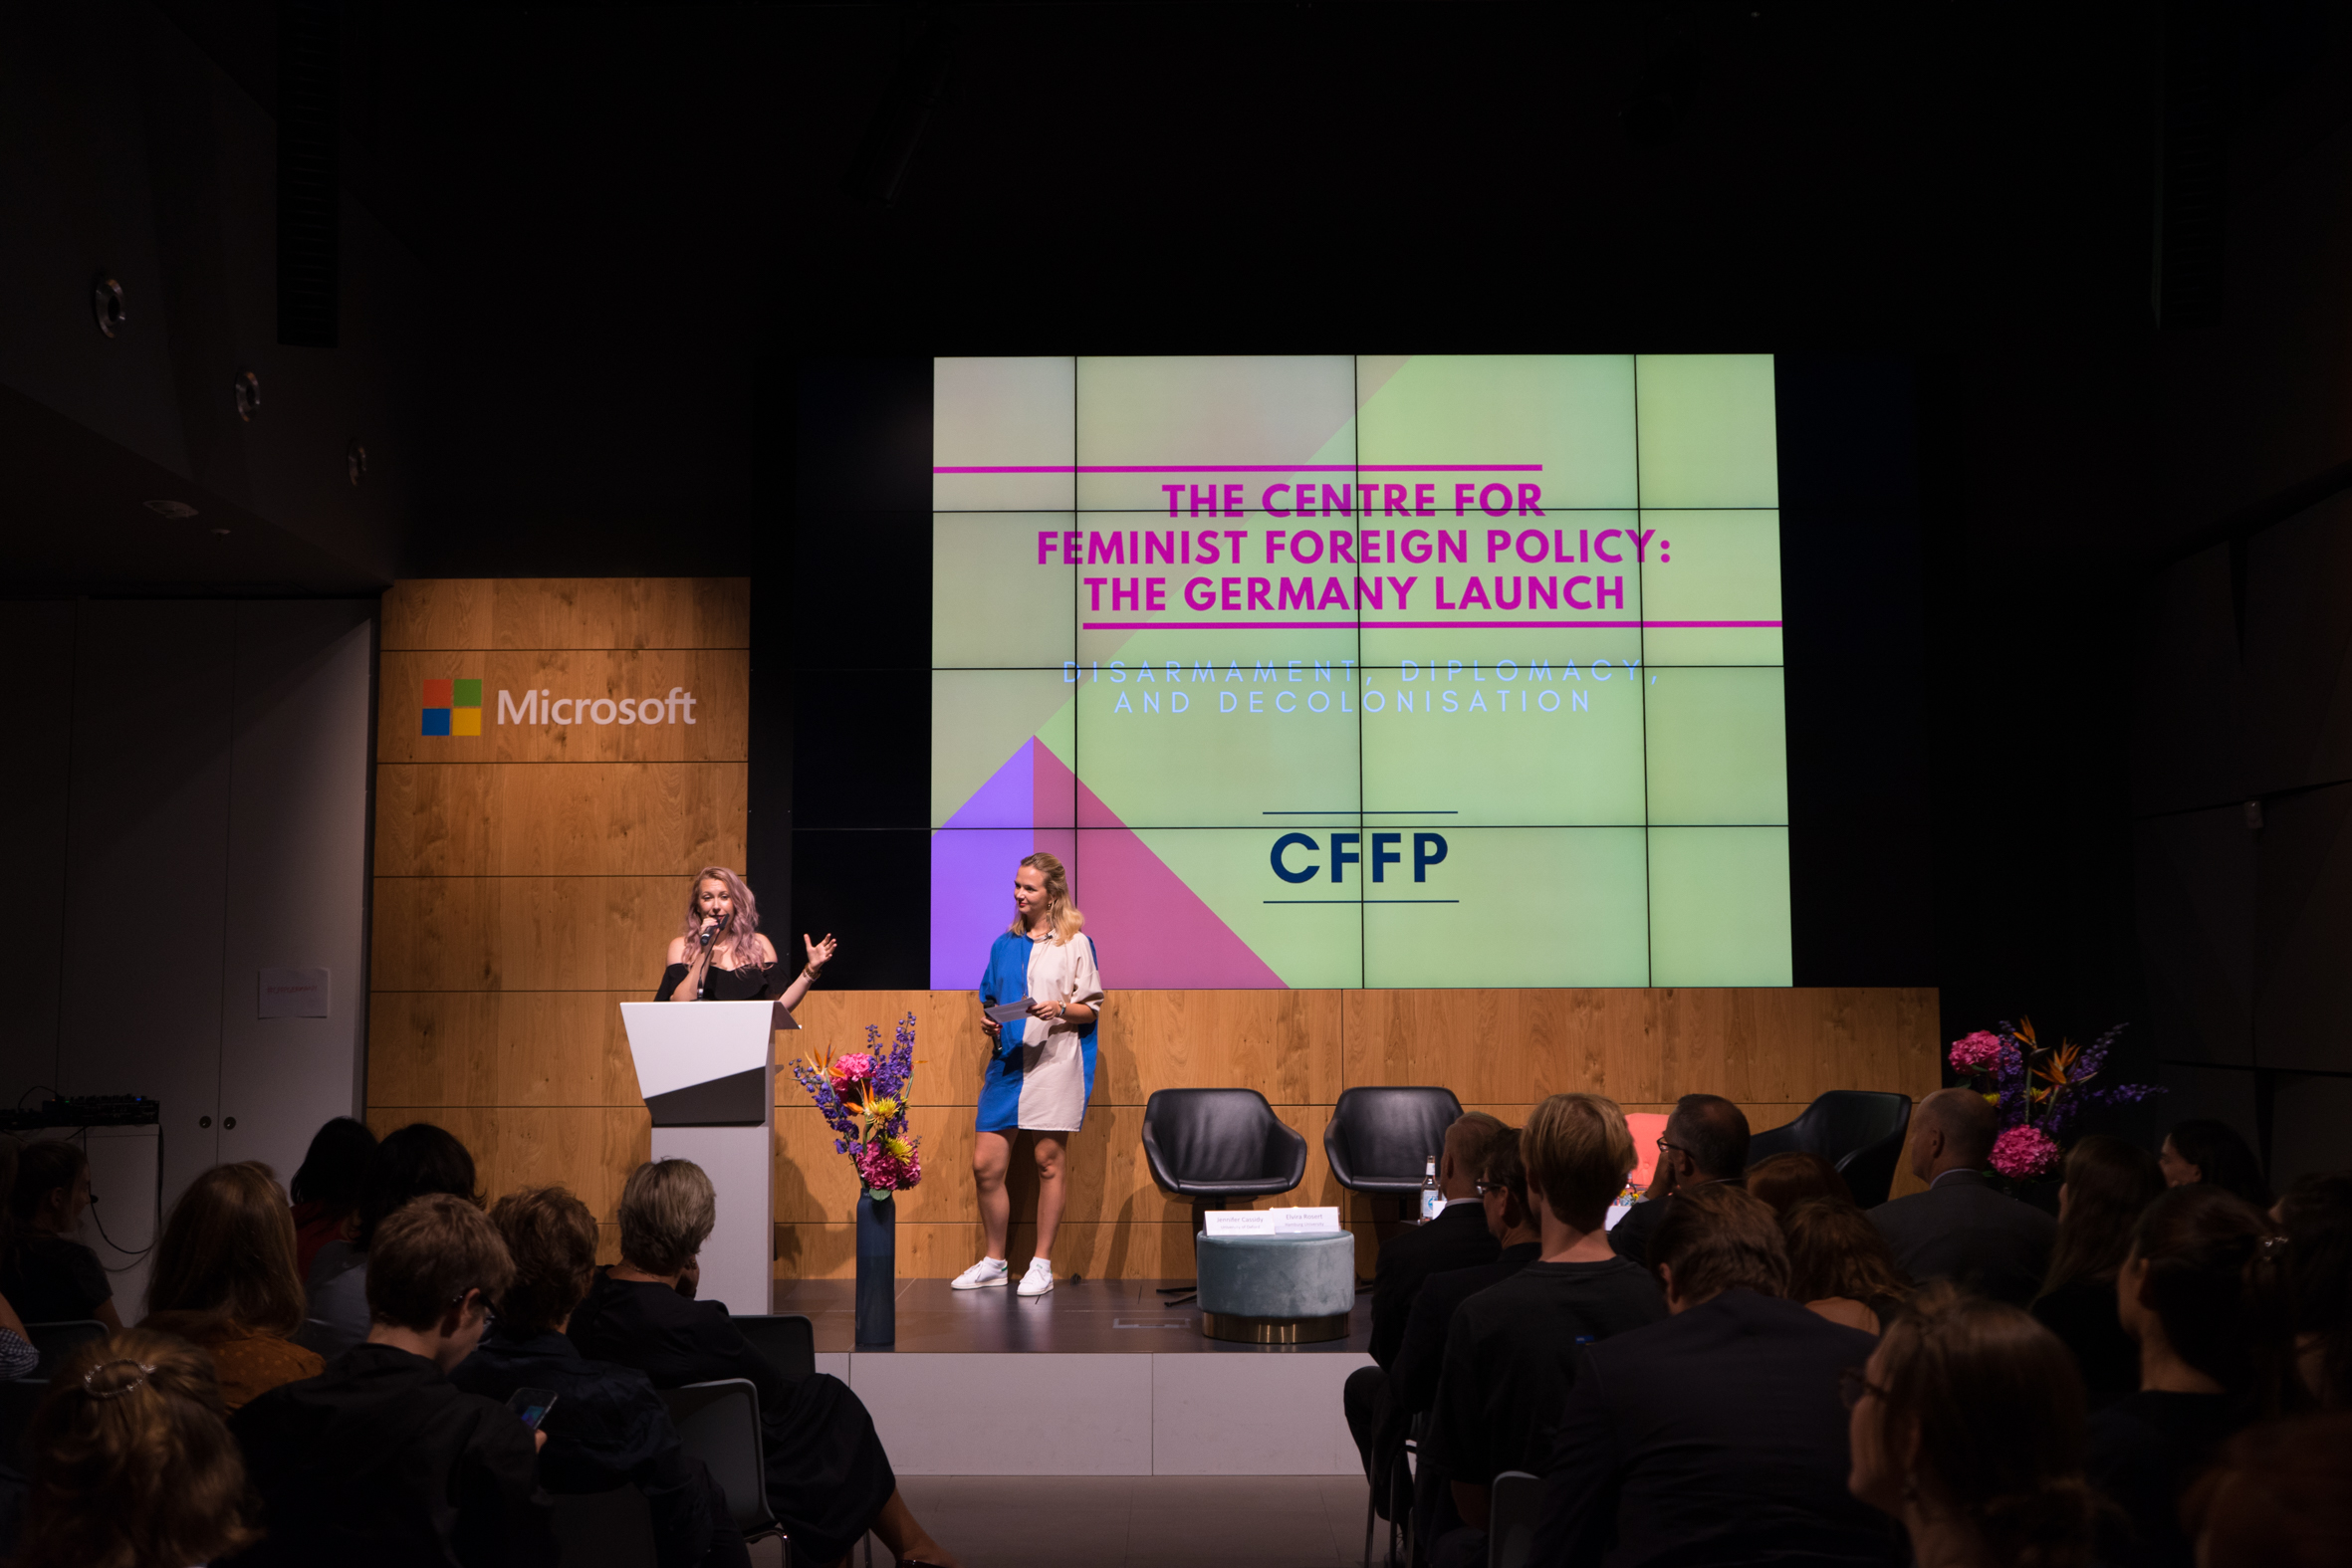 Marissa Conway and Kristina Lunz, CFFP co-founders and, respectively, UK Director and Germany Director